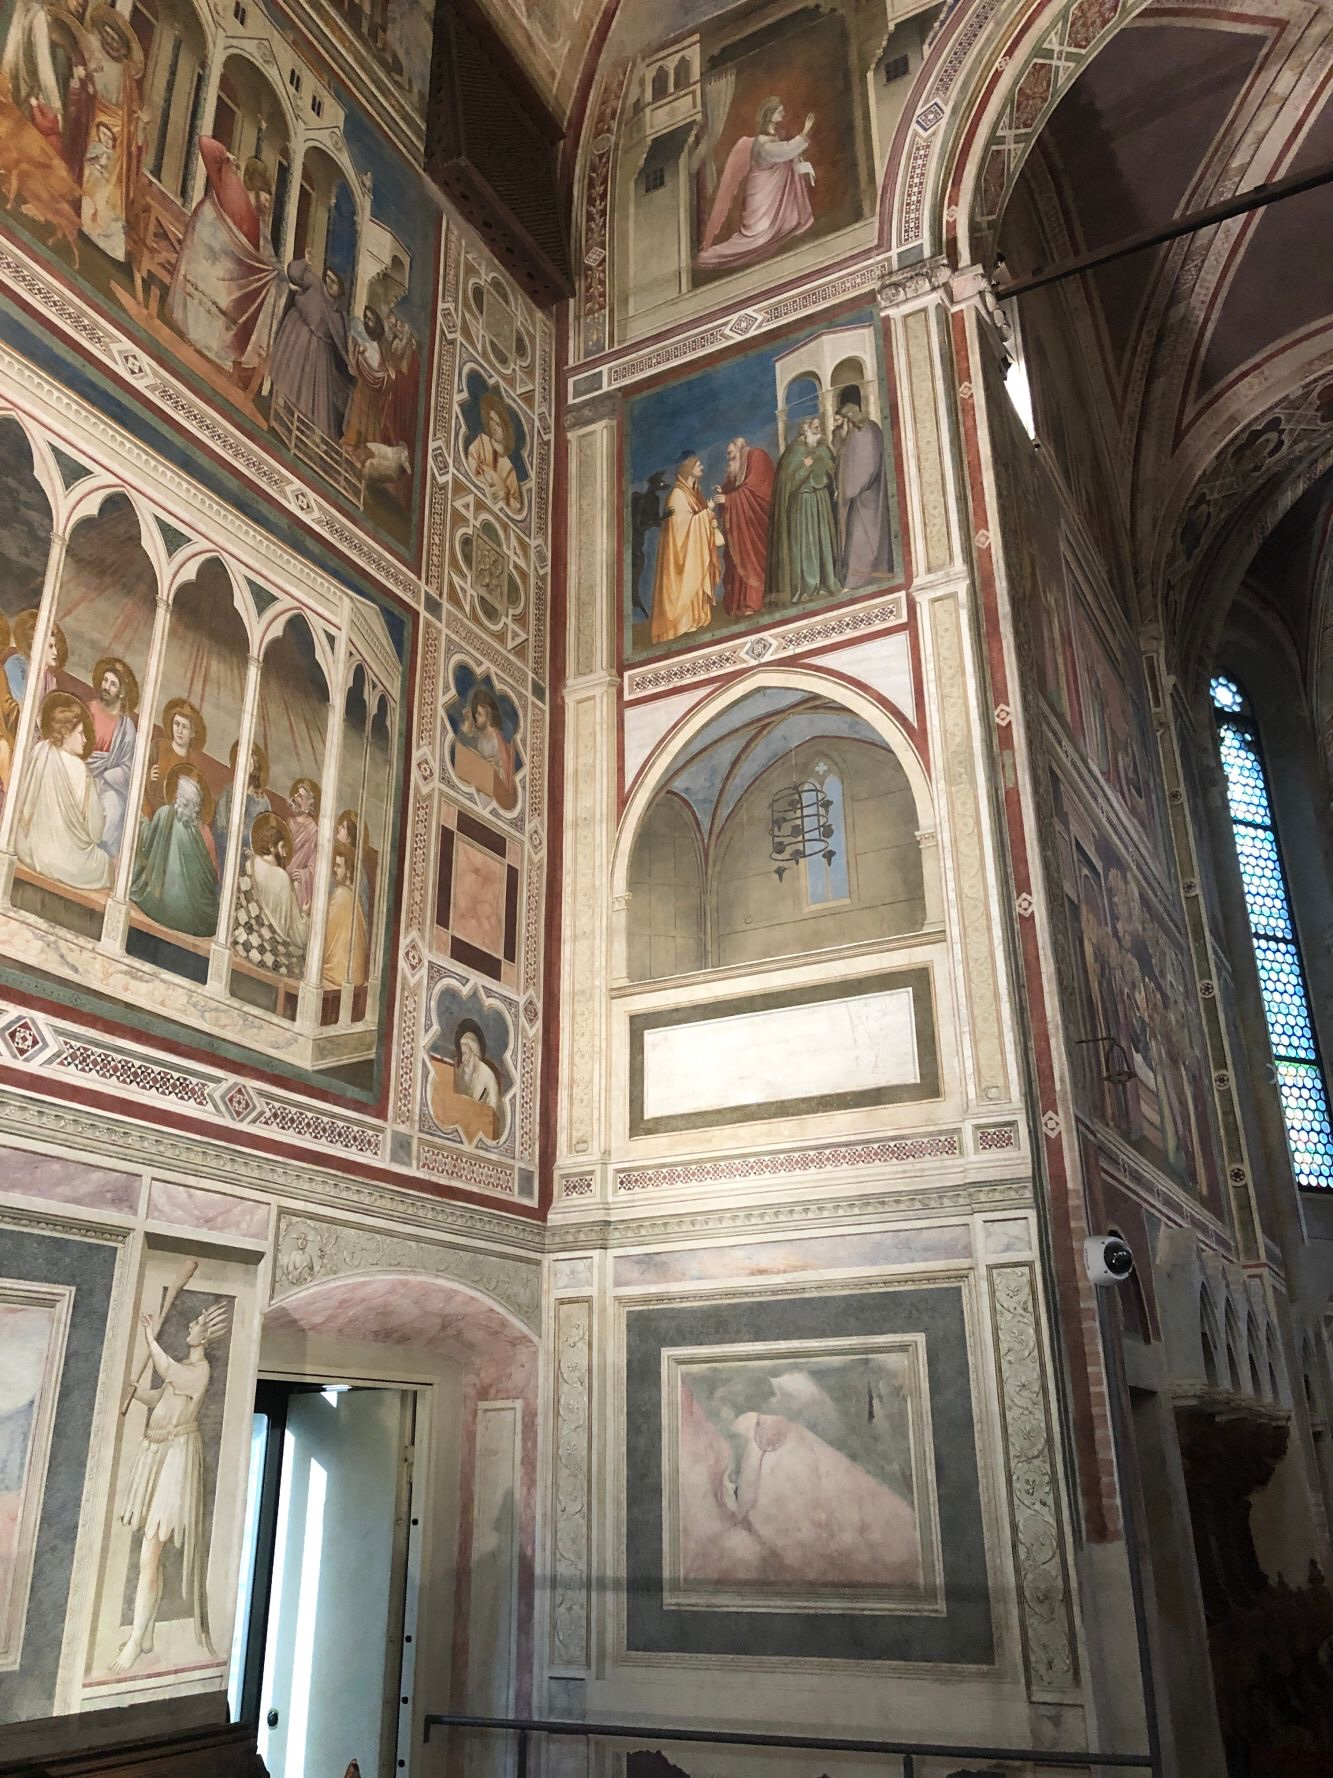 Scrovegni Chapel - interior, is lavishly decorated with fresco cycles by Giotto, 1303-1305